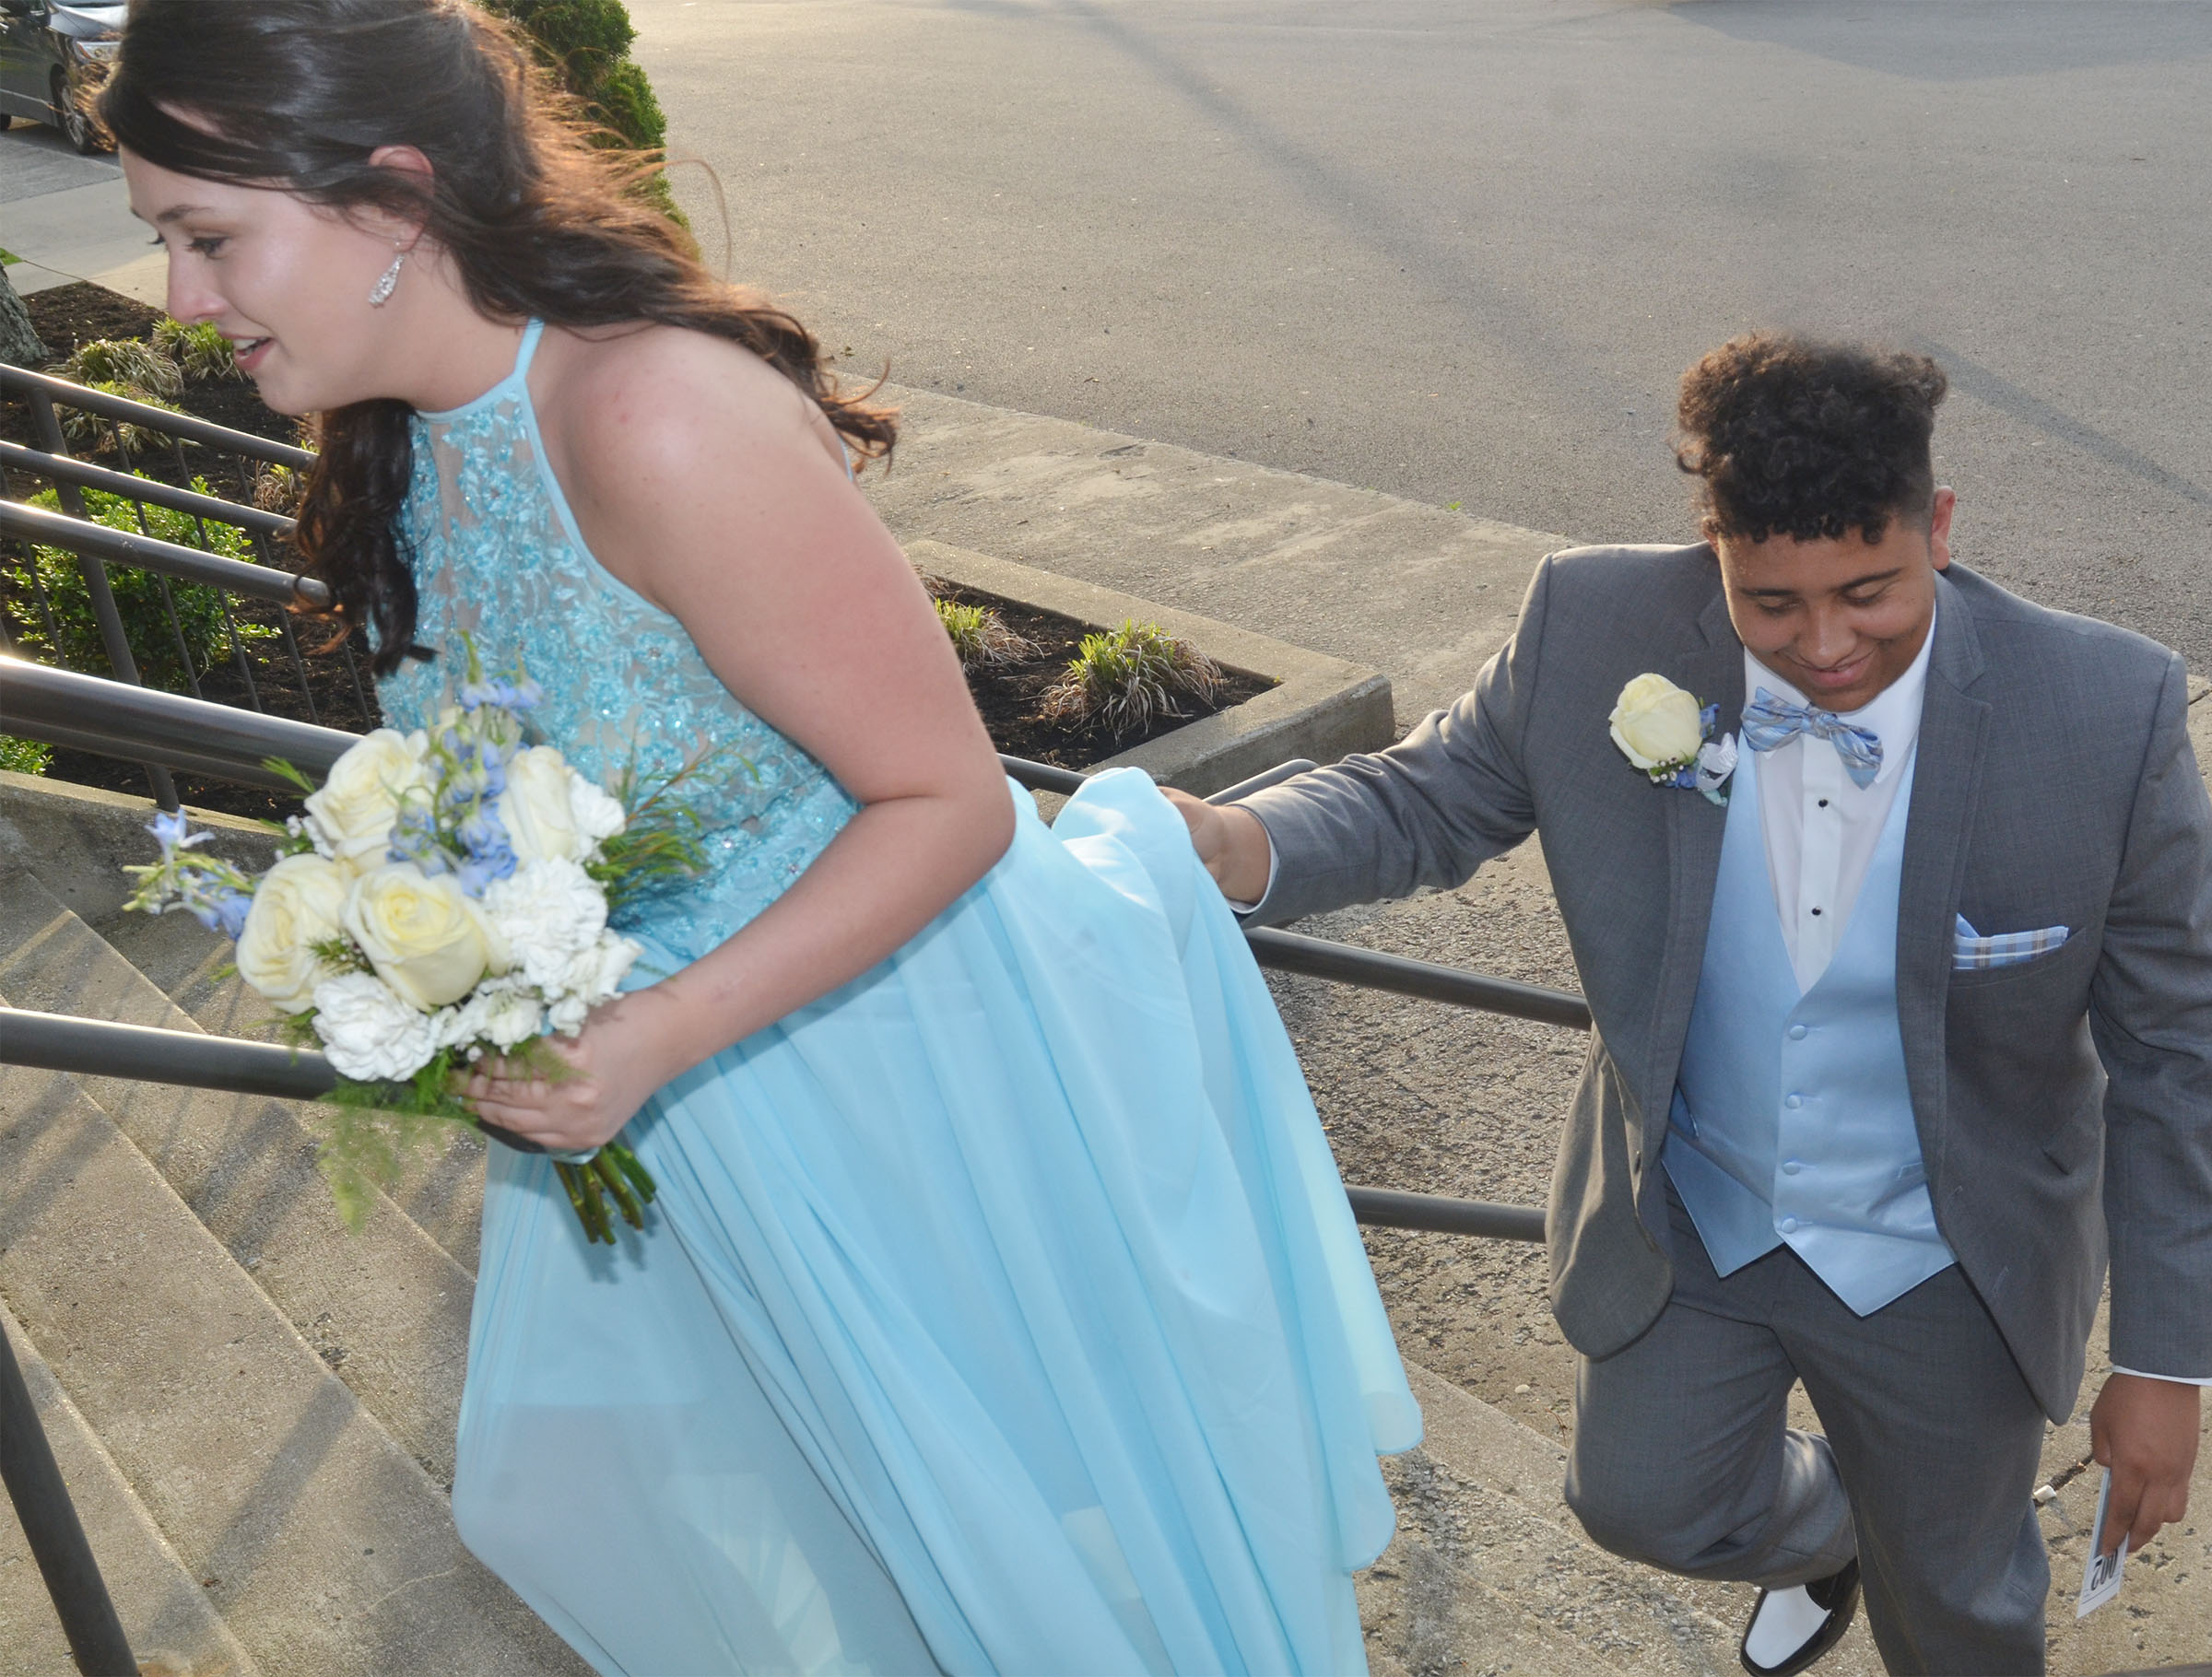 CHS junior Adrian Cravens helps junior Missy Vanorder walk up the steps.